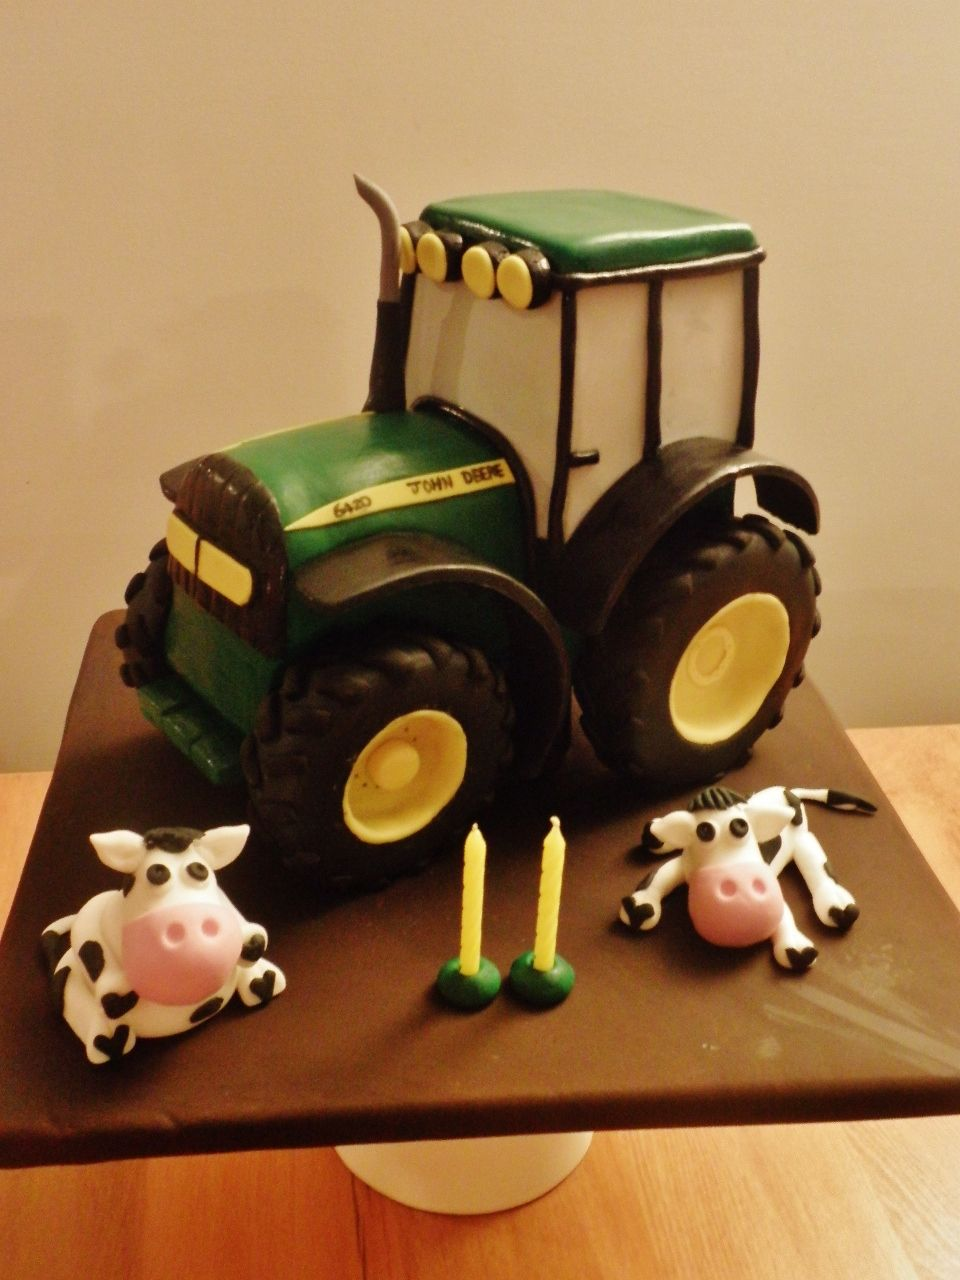 John Deere Tractor Cake Recipes Pinterest Tractor Cake and